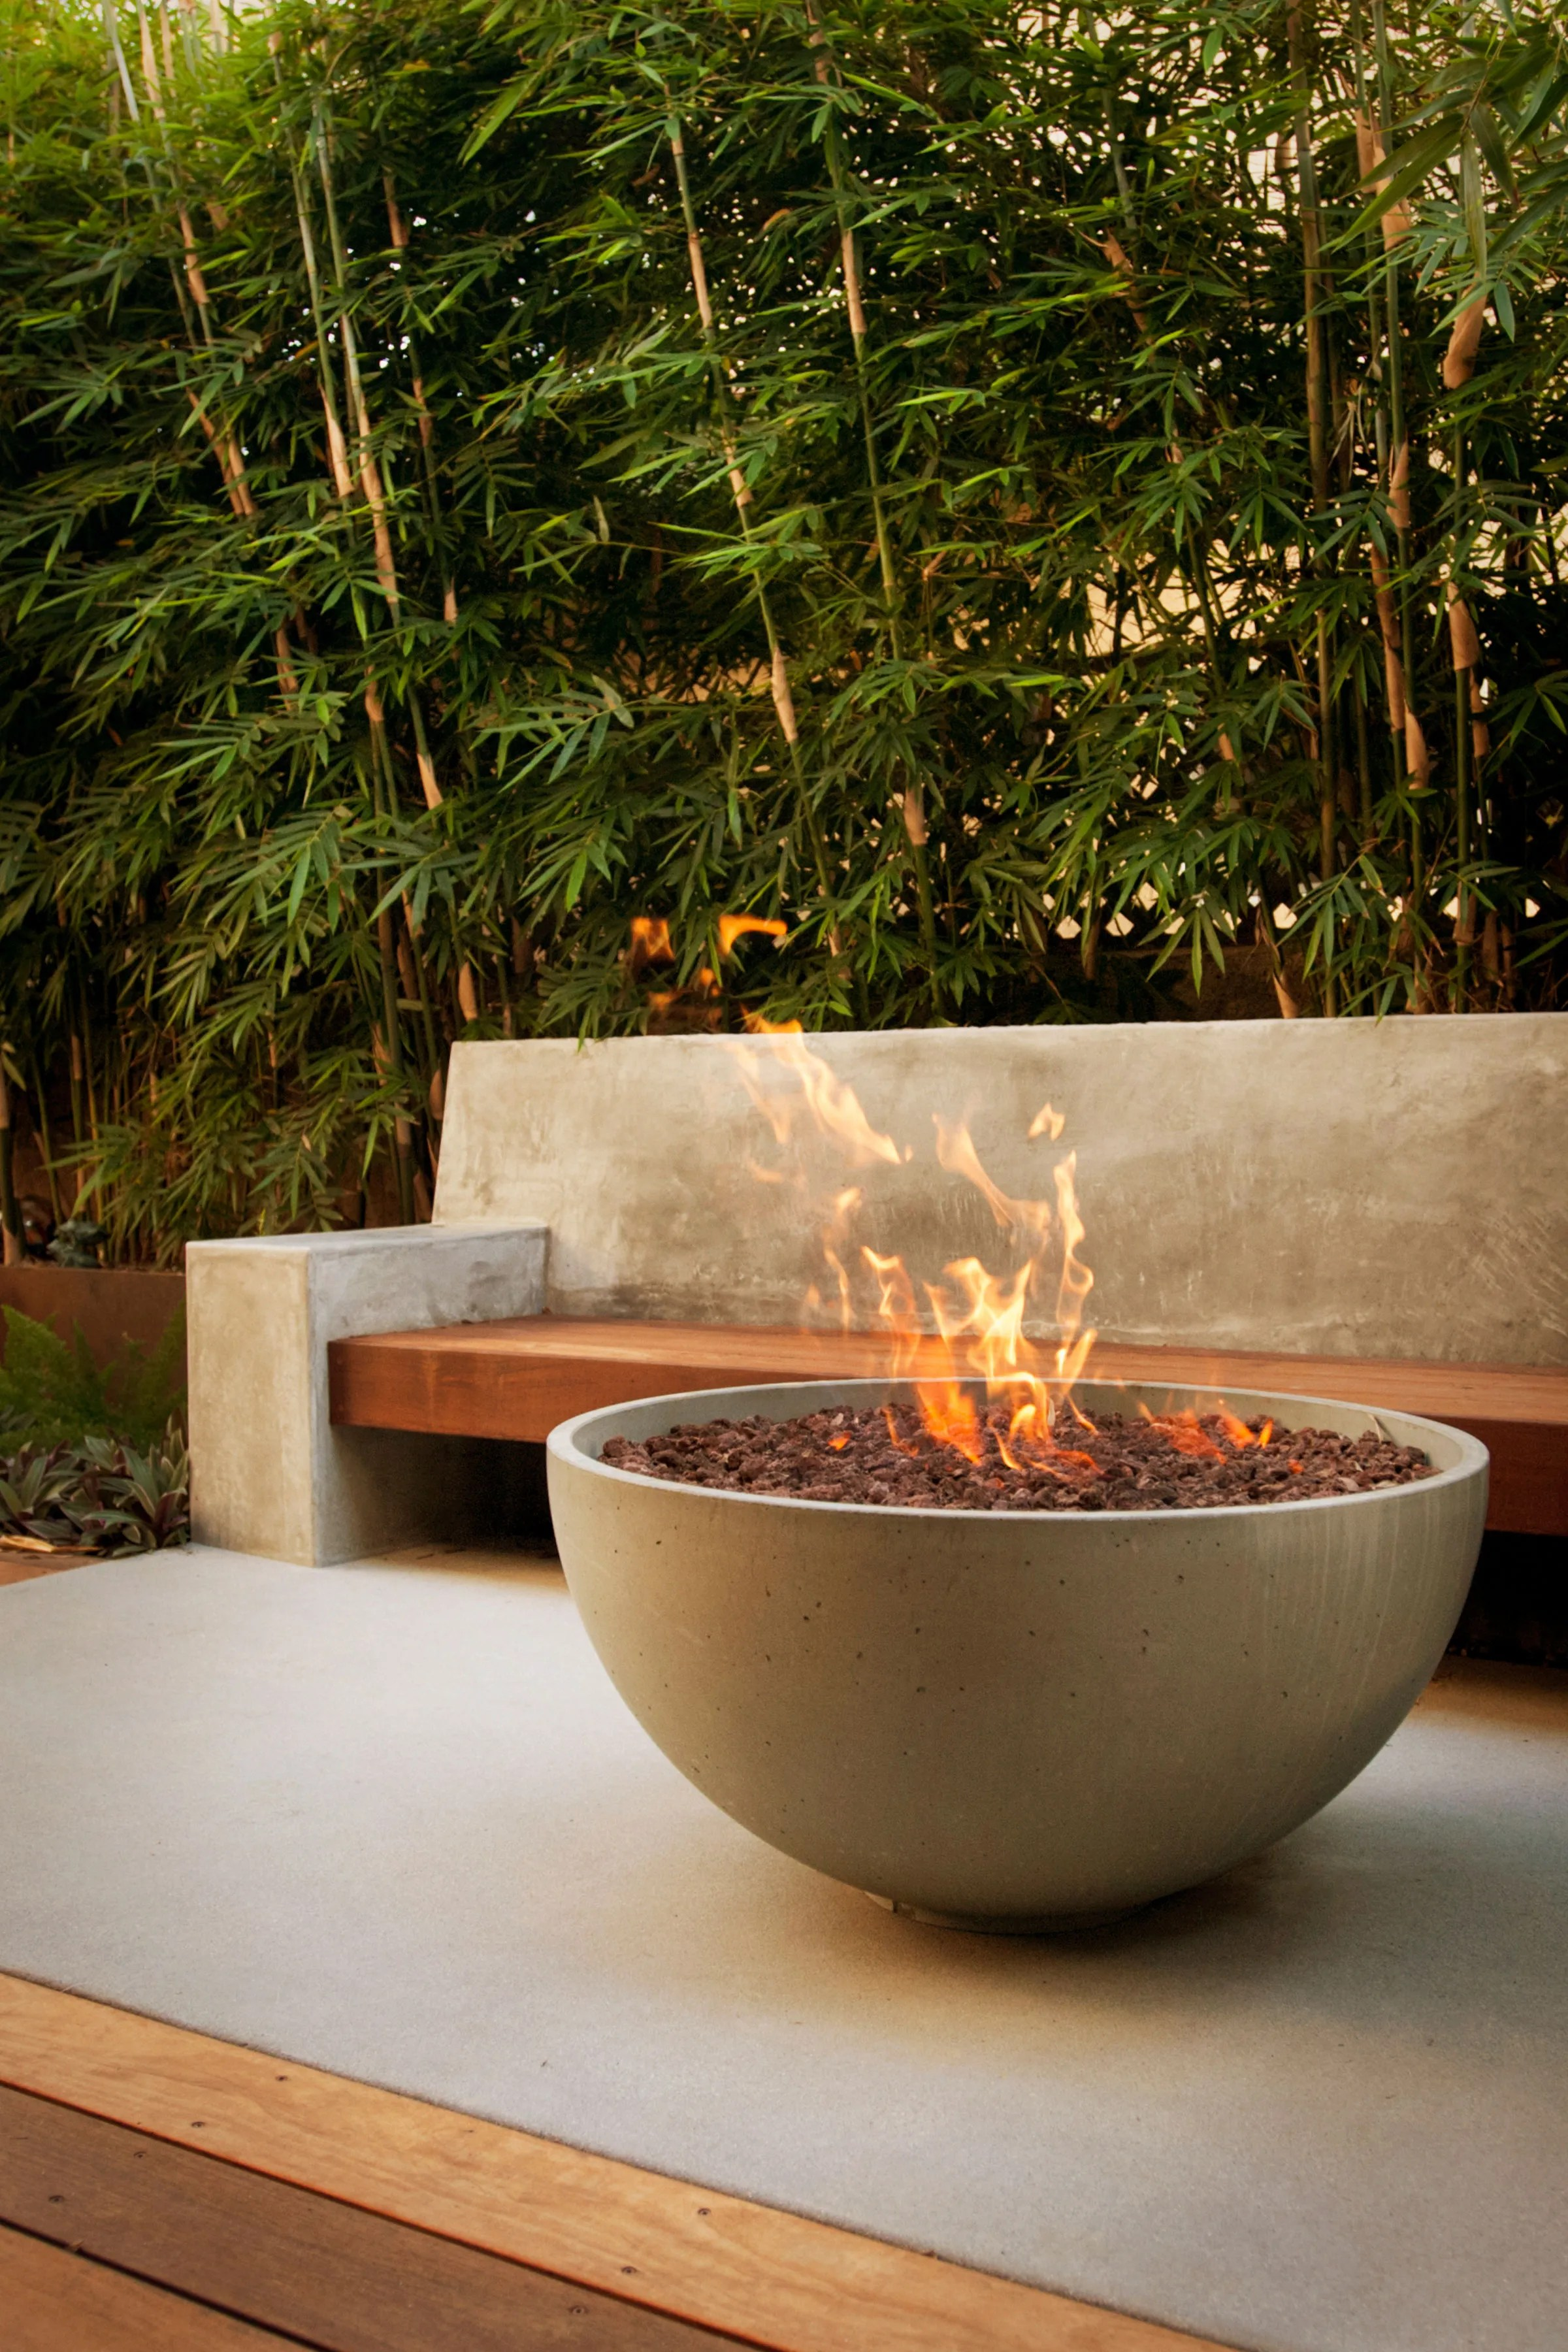 Outdoor Fire Pit Ideas: Transform Your Outdoor Fire Pit ... on Outdoor Fire Pit Ideas id=74500